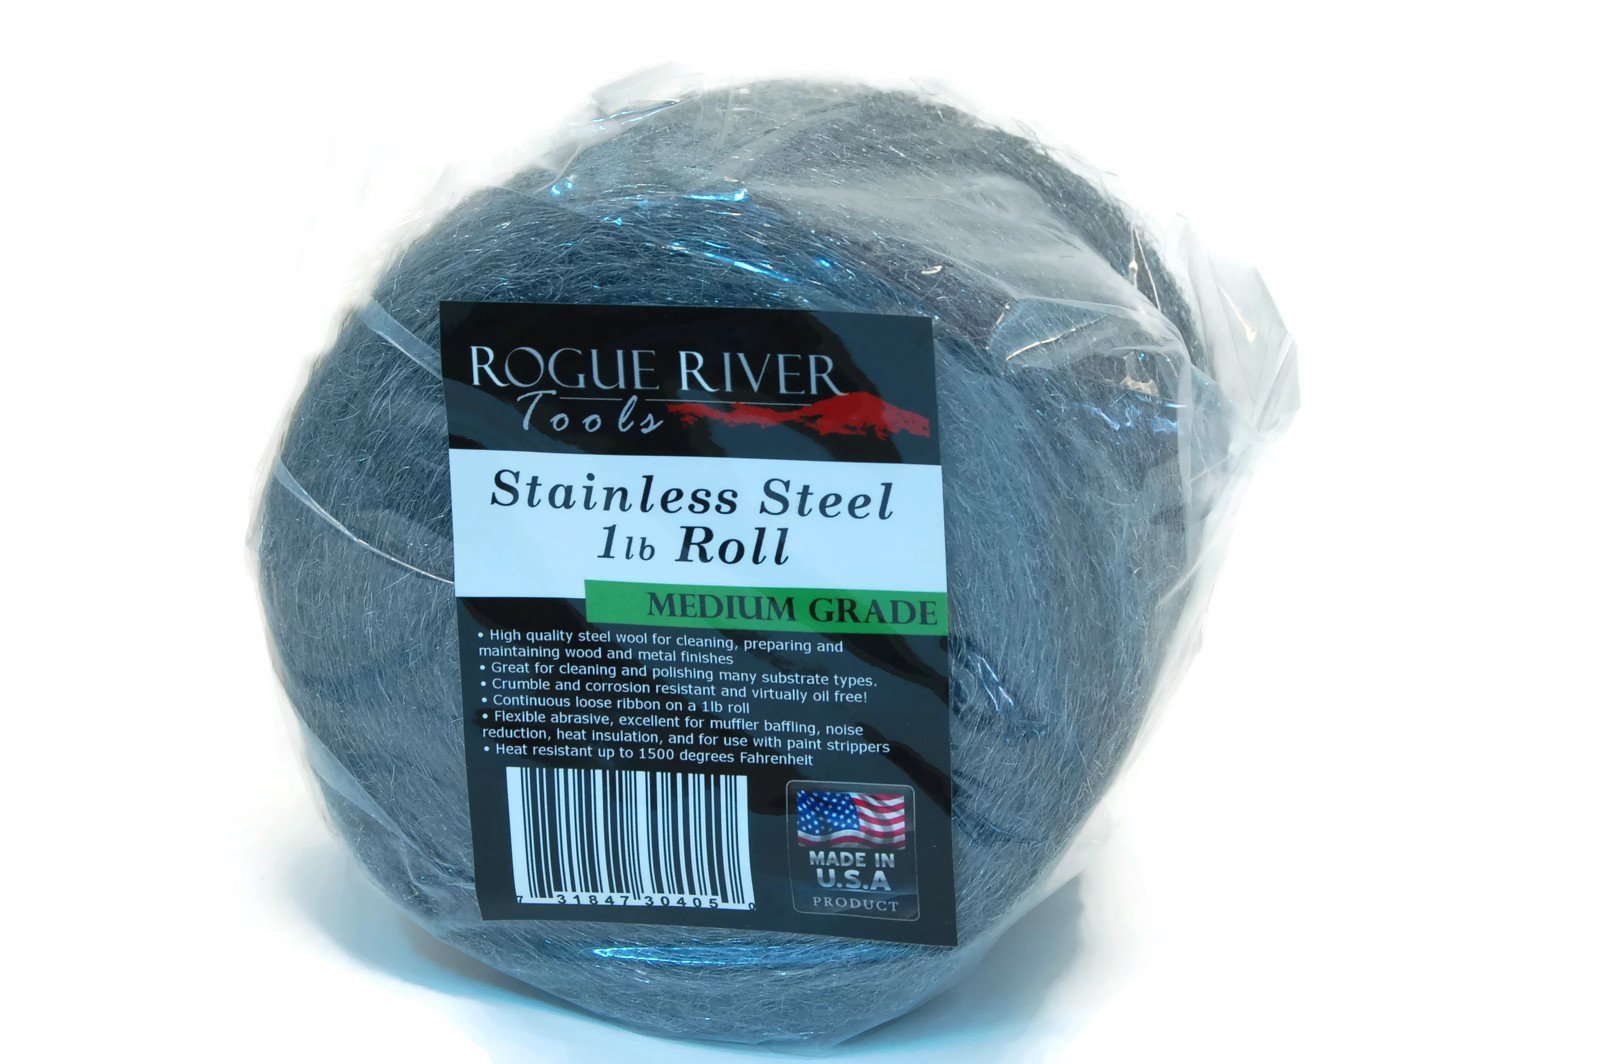 Rogue River Tools Stainless Steel Wool 1lb Roll (Medium Grade) - Made in USA! by Rogue River Tools